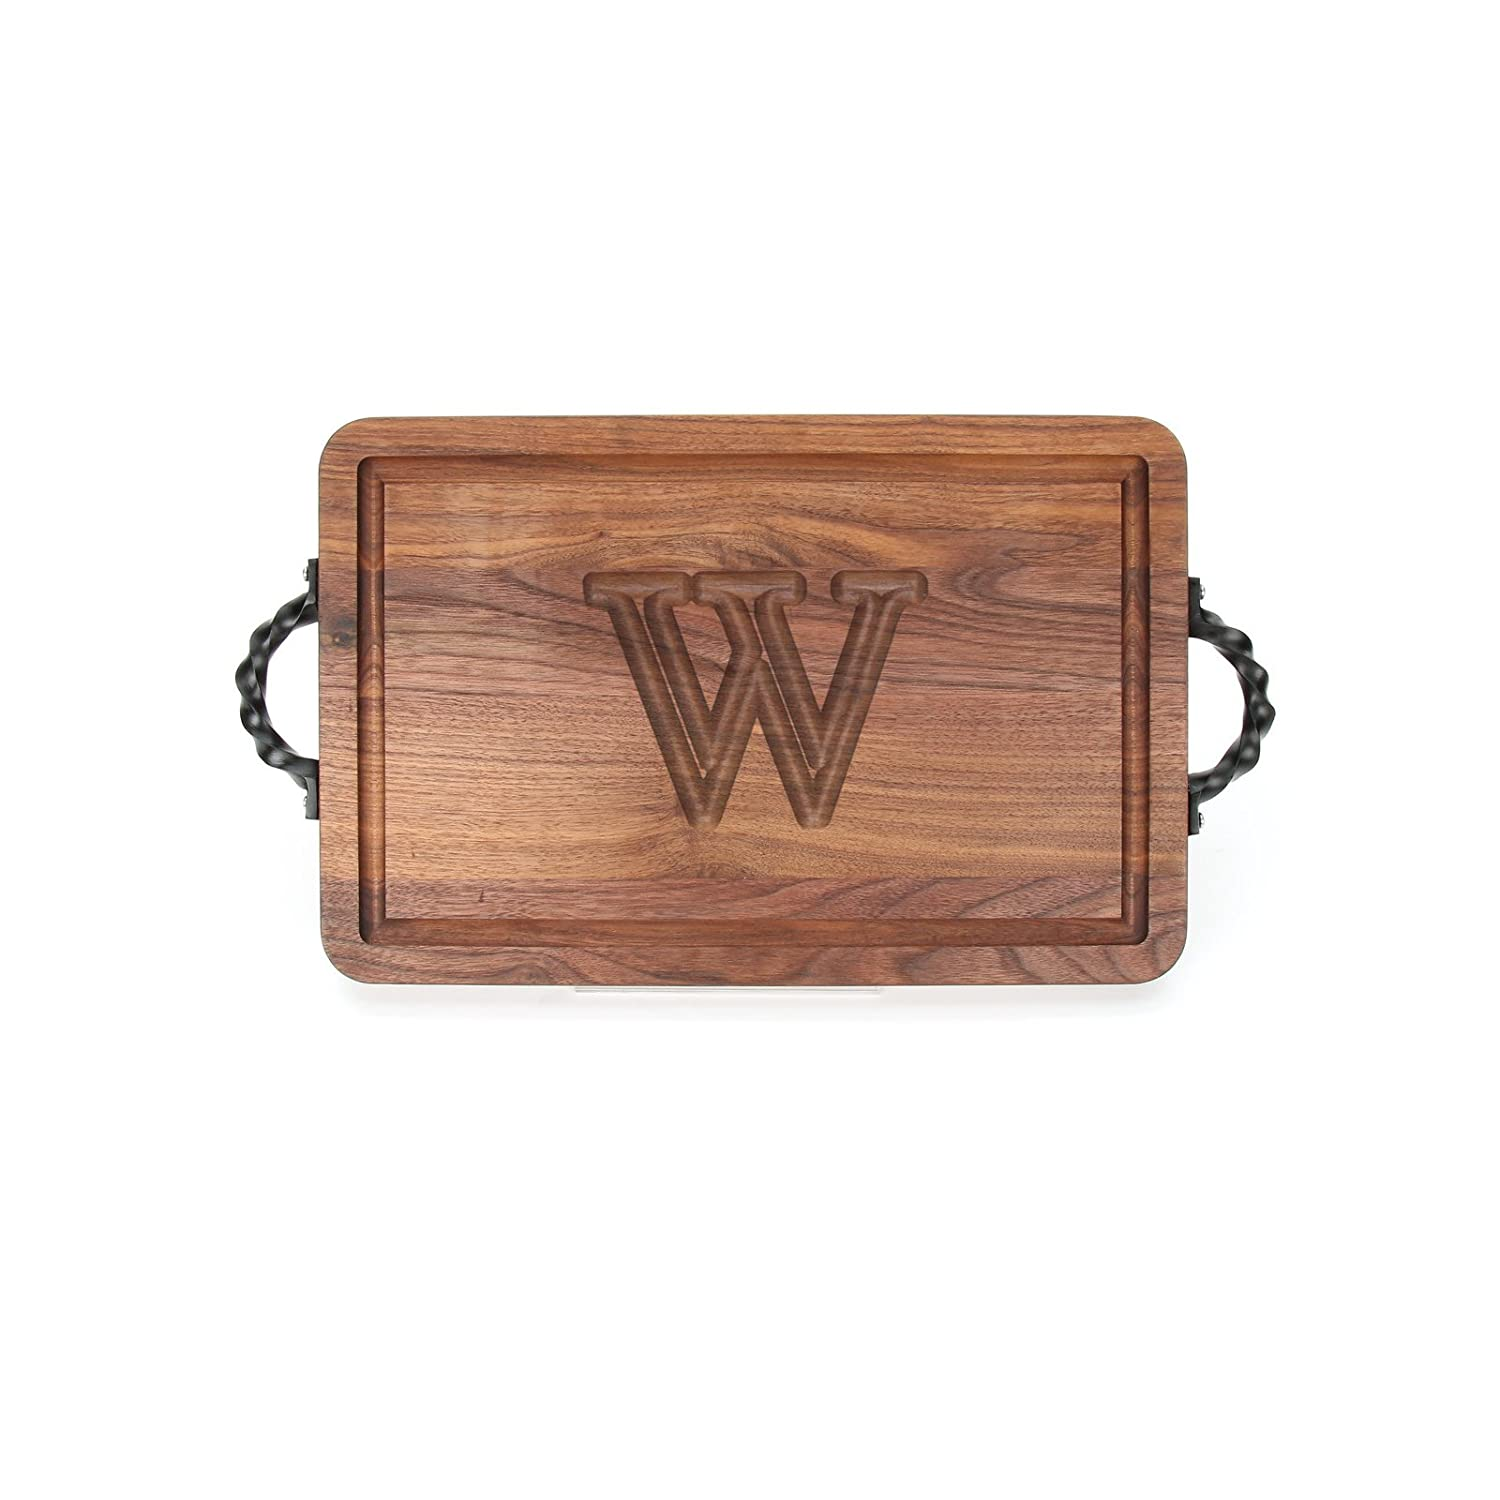 Walnut MonogrammedY BigWood Boards W200-STWS-Y Thick Bar//Cheese Board with Twisted Square End Handle 9-Inch by 12-Inch by 3//4-Inch